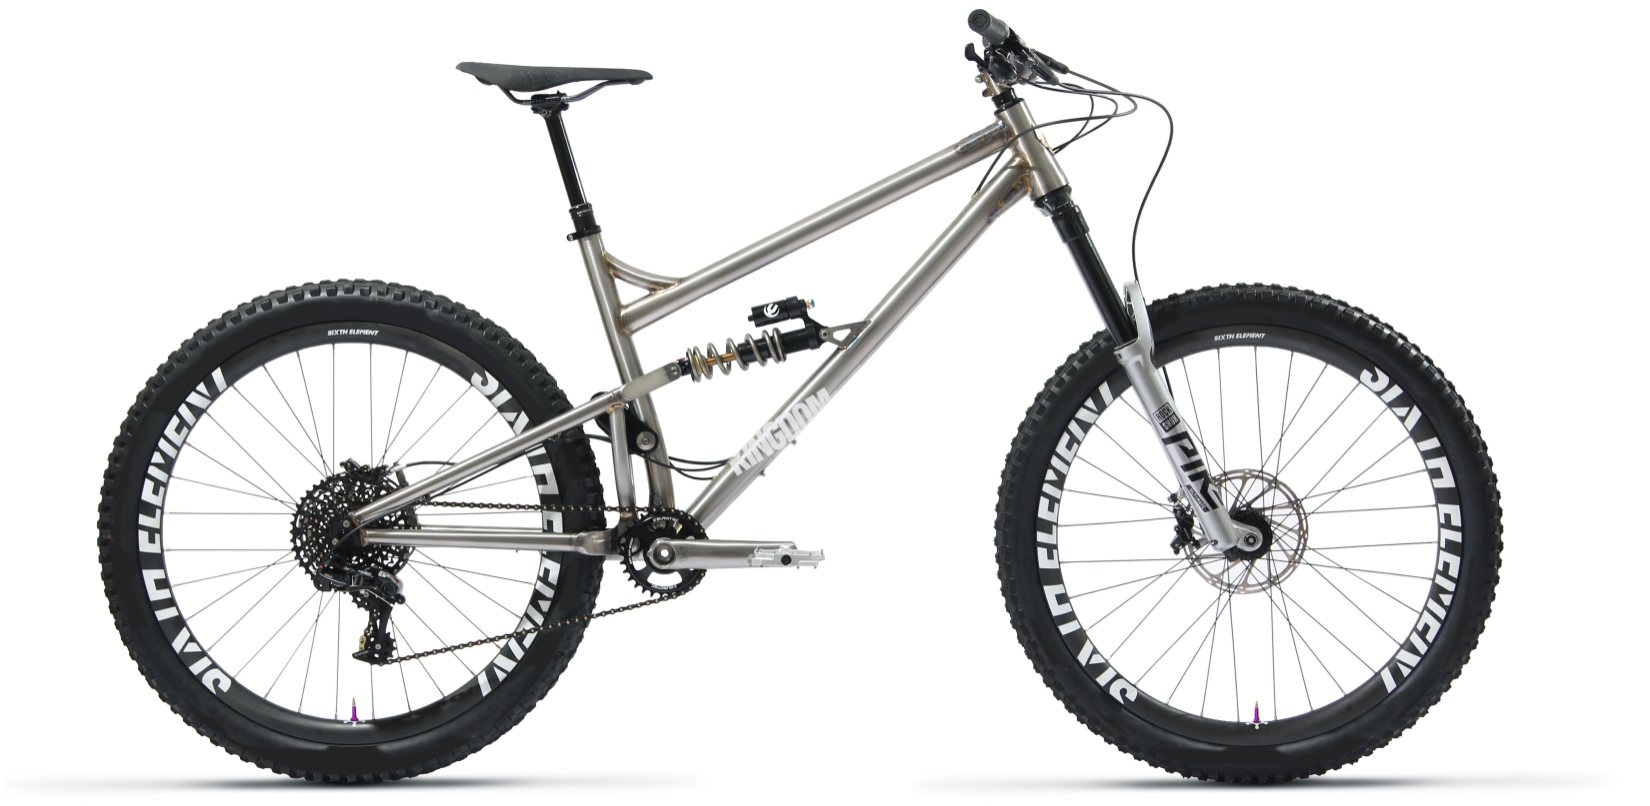 Now stocking Kingdom Bikes